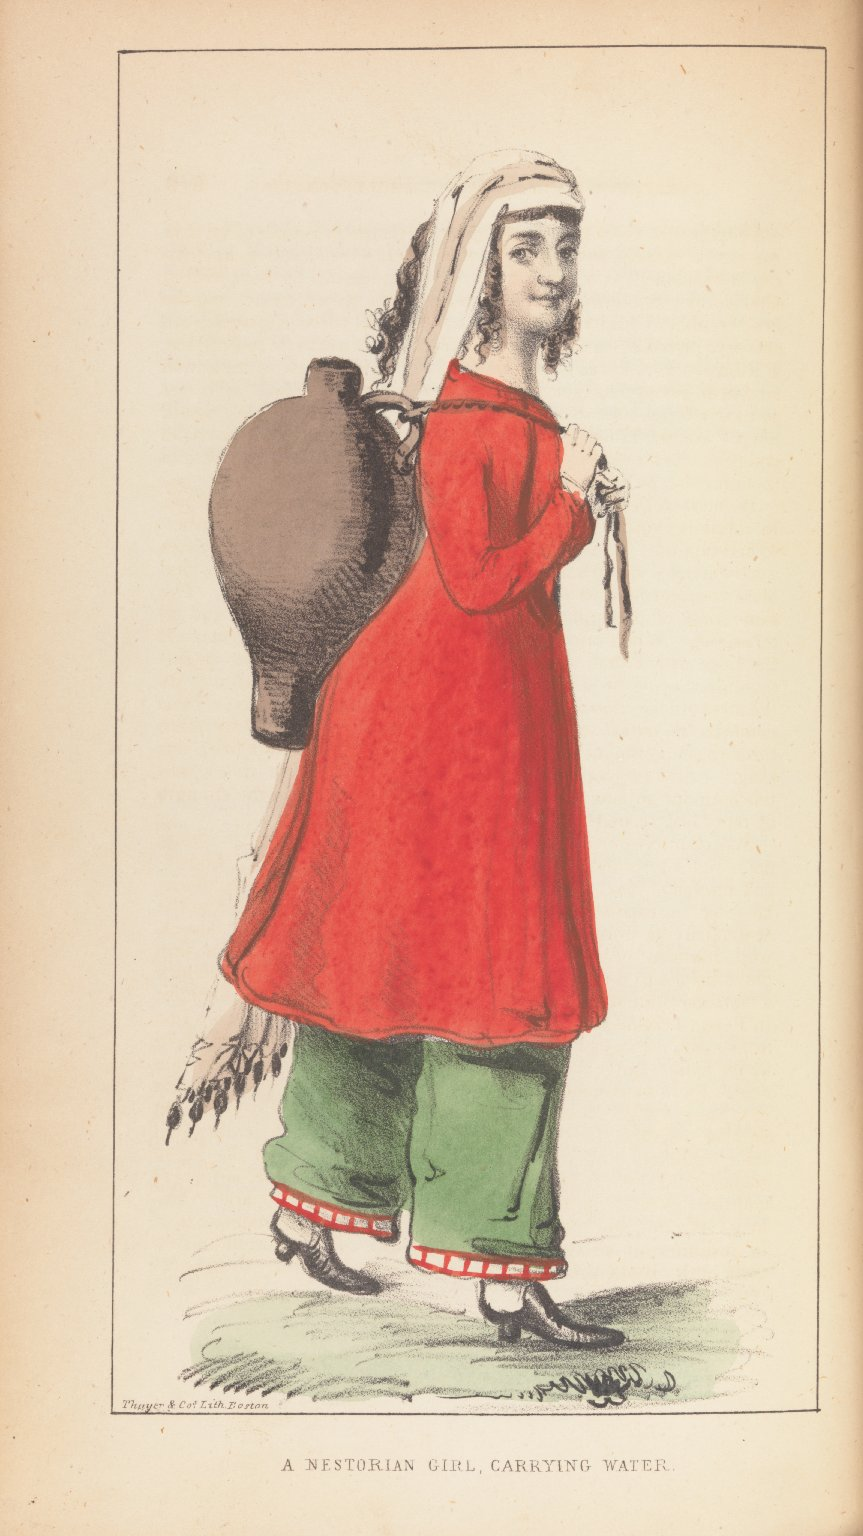 A Nestorian Girl, Carrying Water